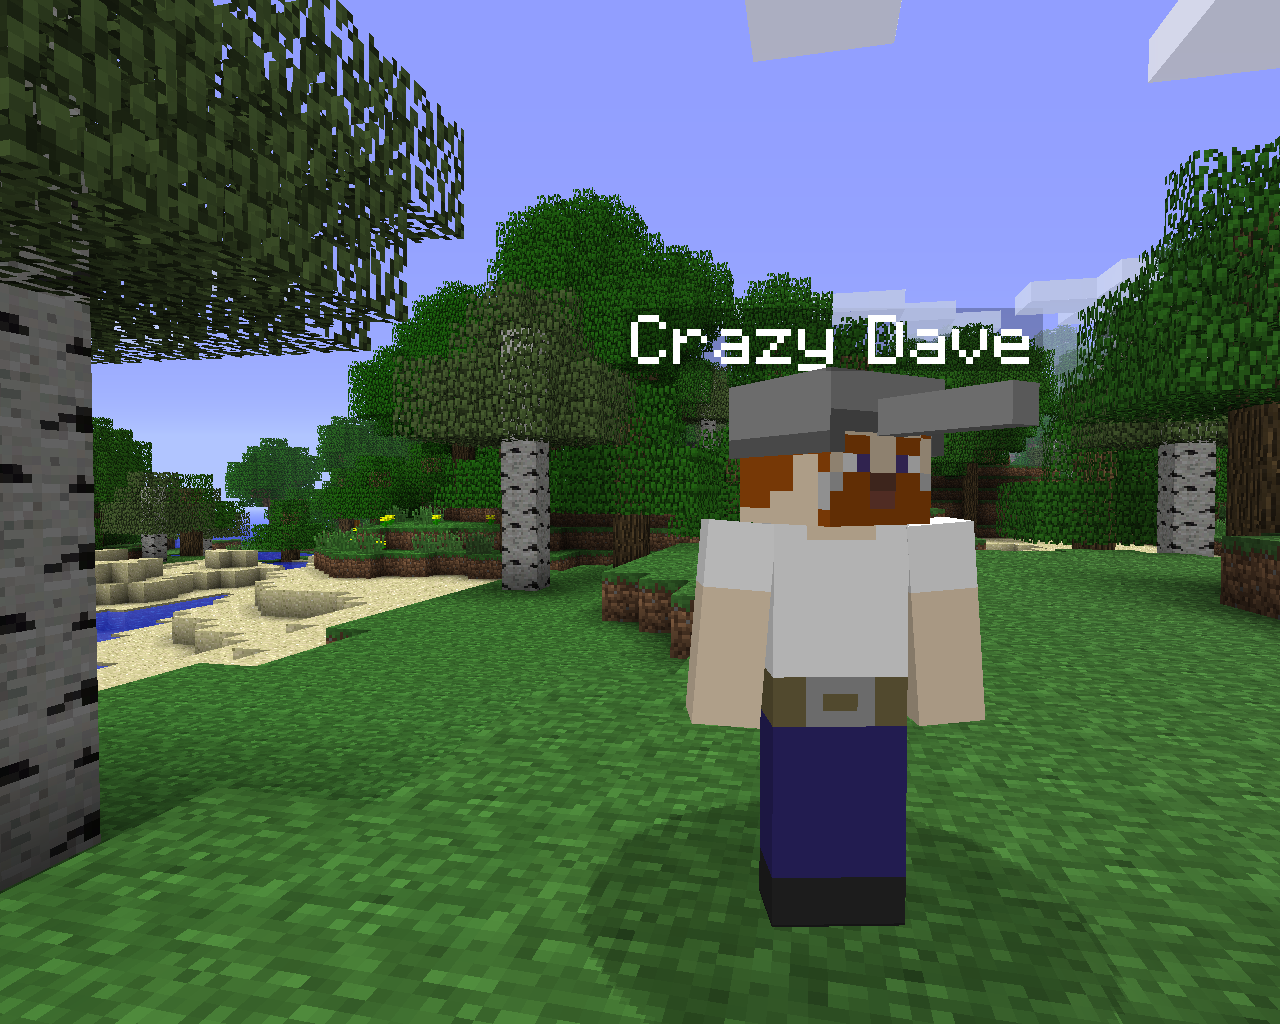 Crazy Dave Image Plants Vs Zombies Mod For Minecraft